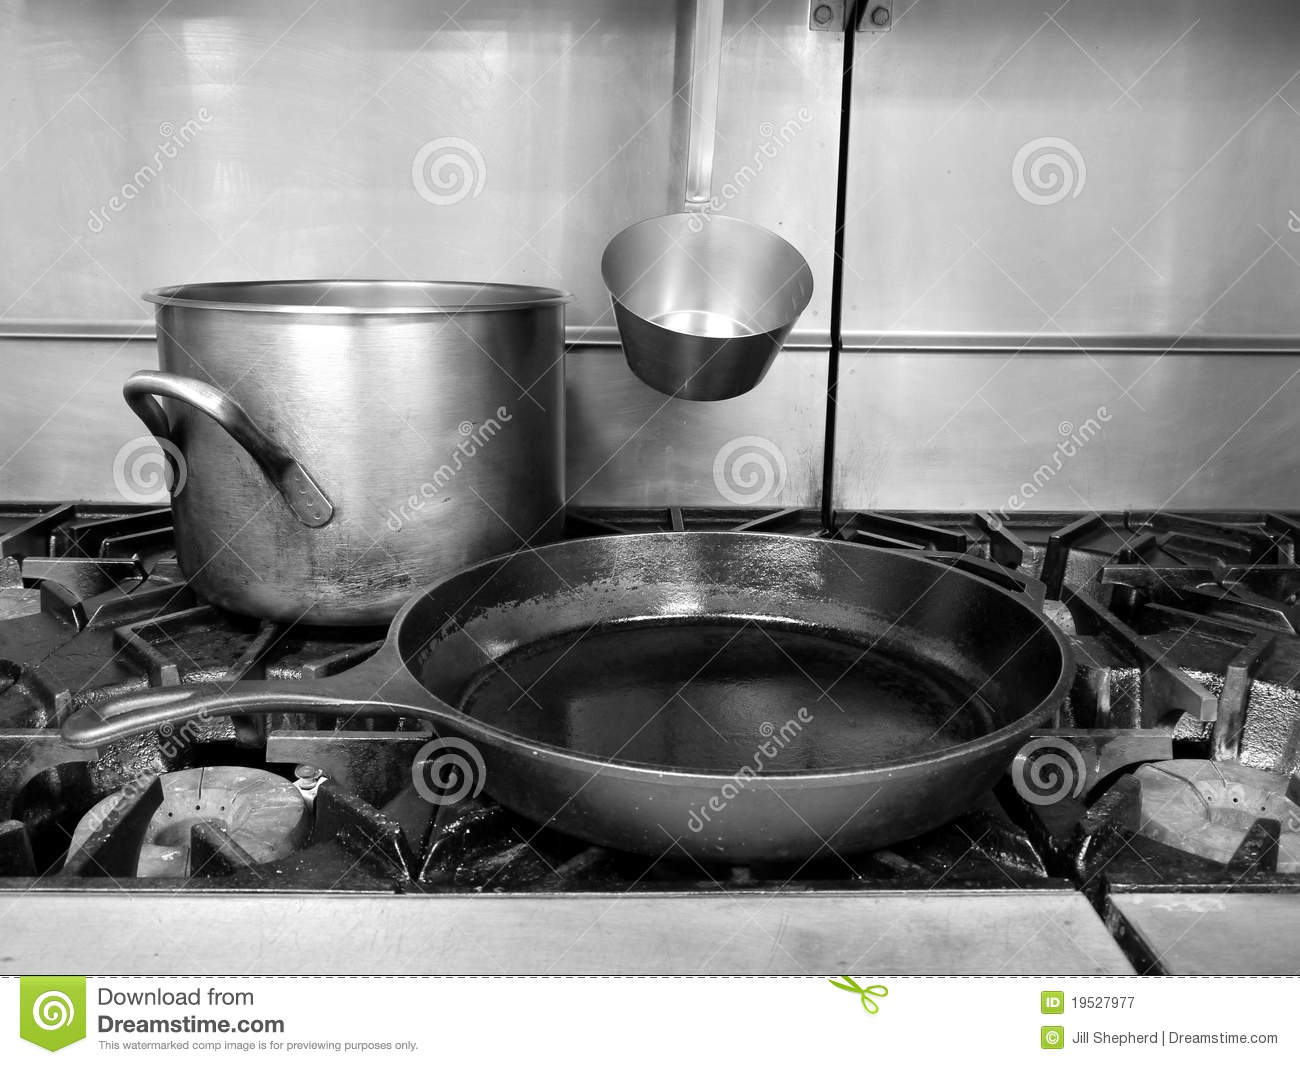 Kitchen Stove Top commercial kitchen: stove top pan stock images - image: 19210284